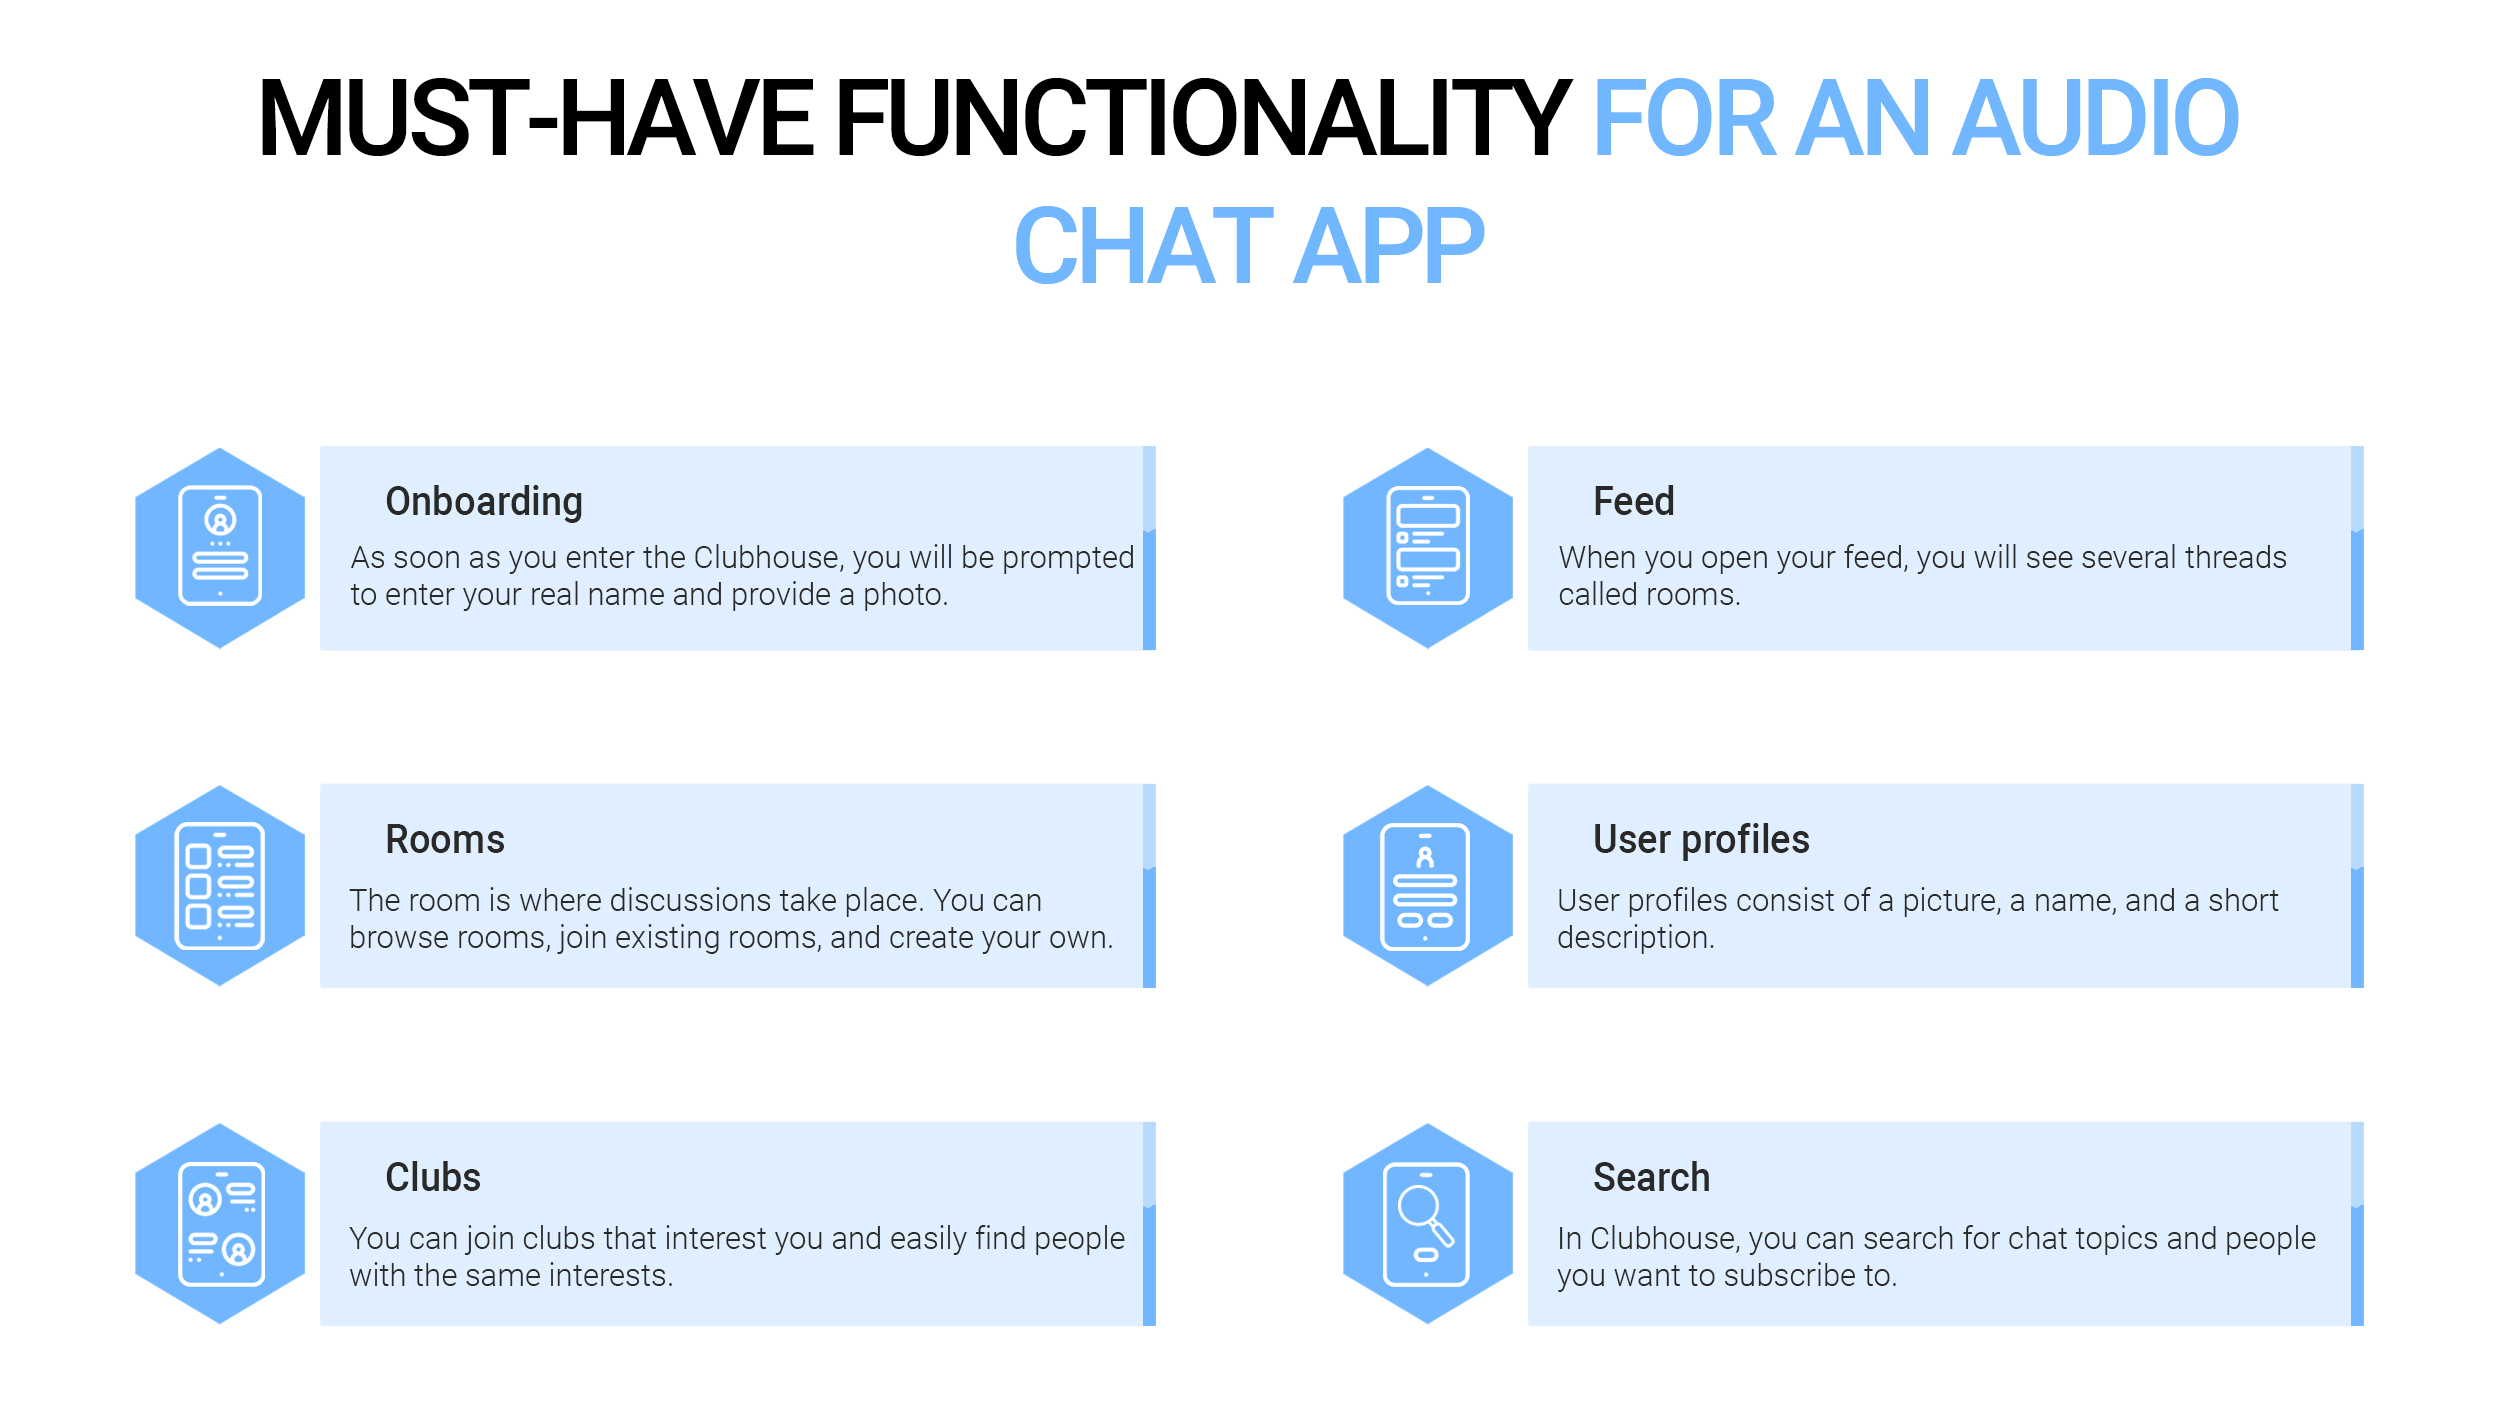 Must have functionality for an audio chat app